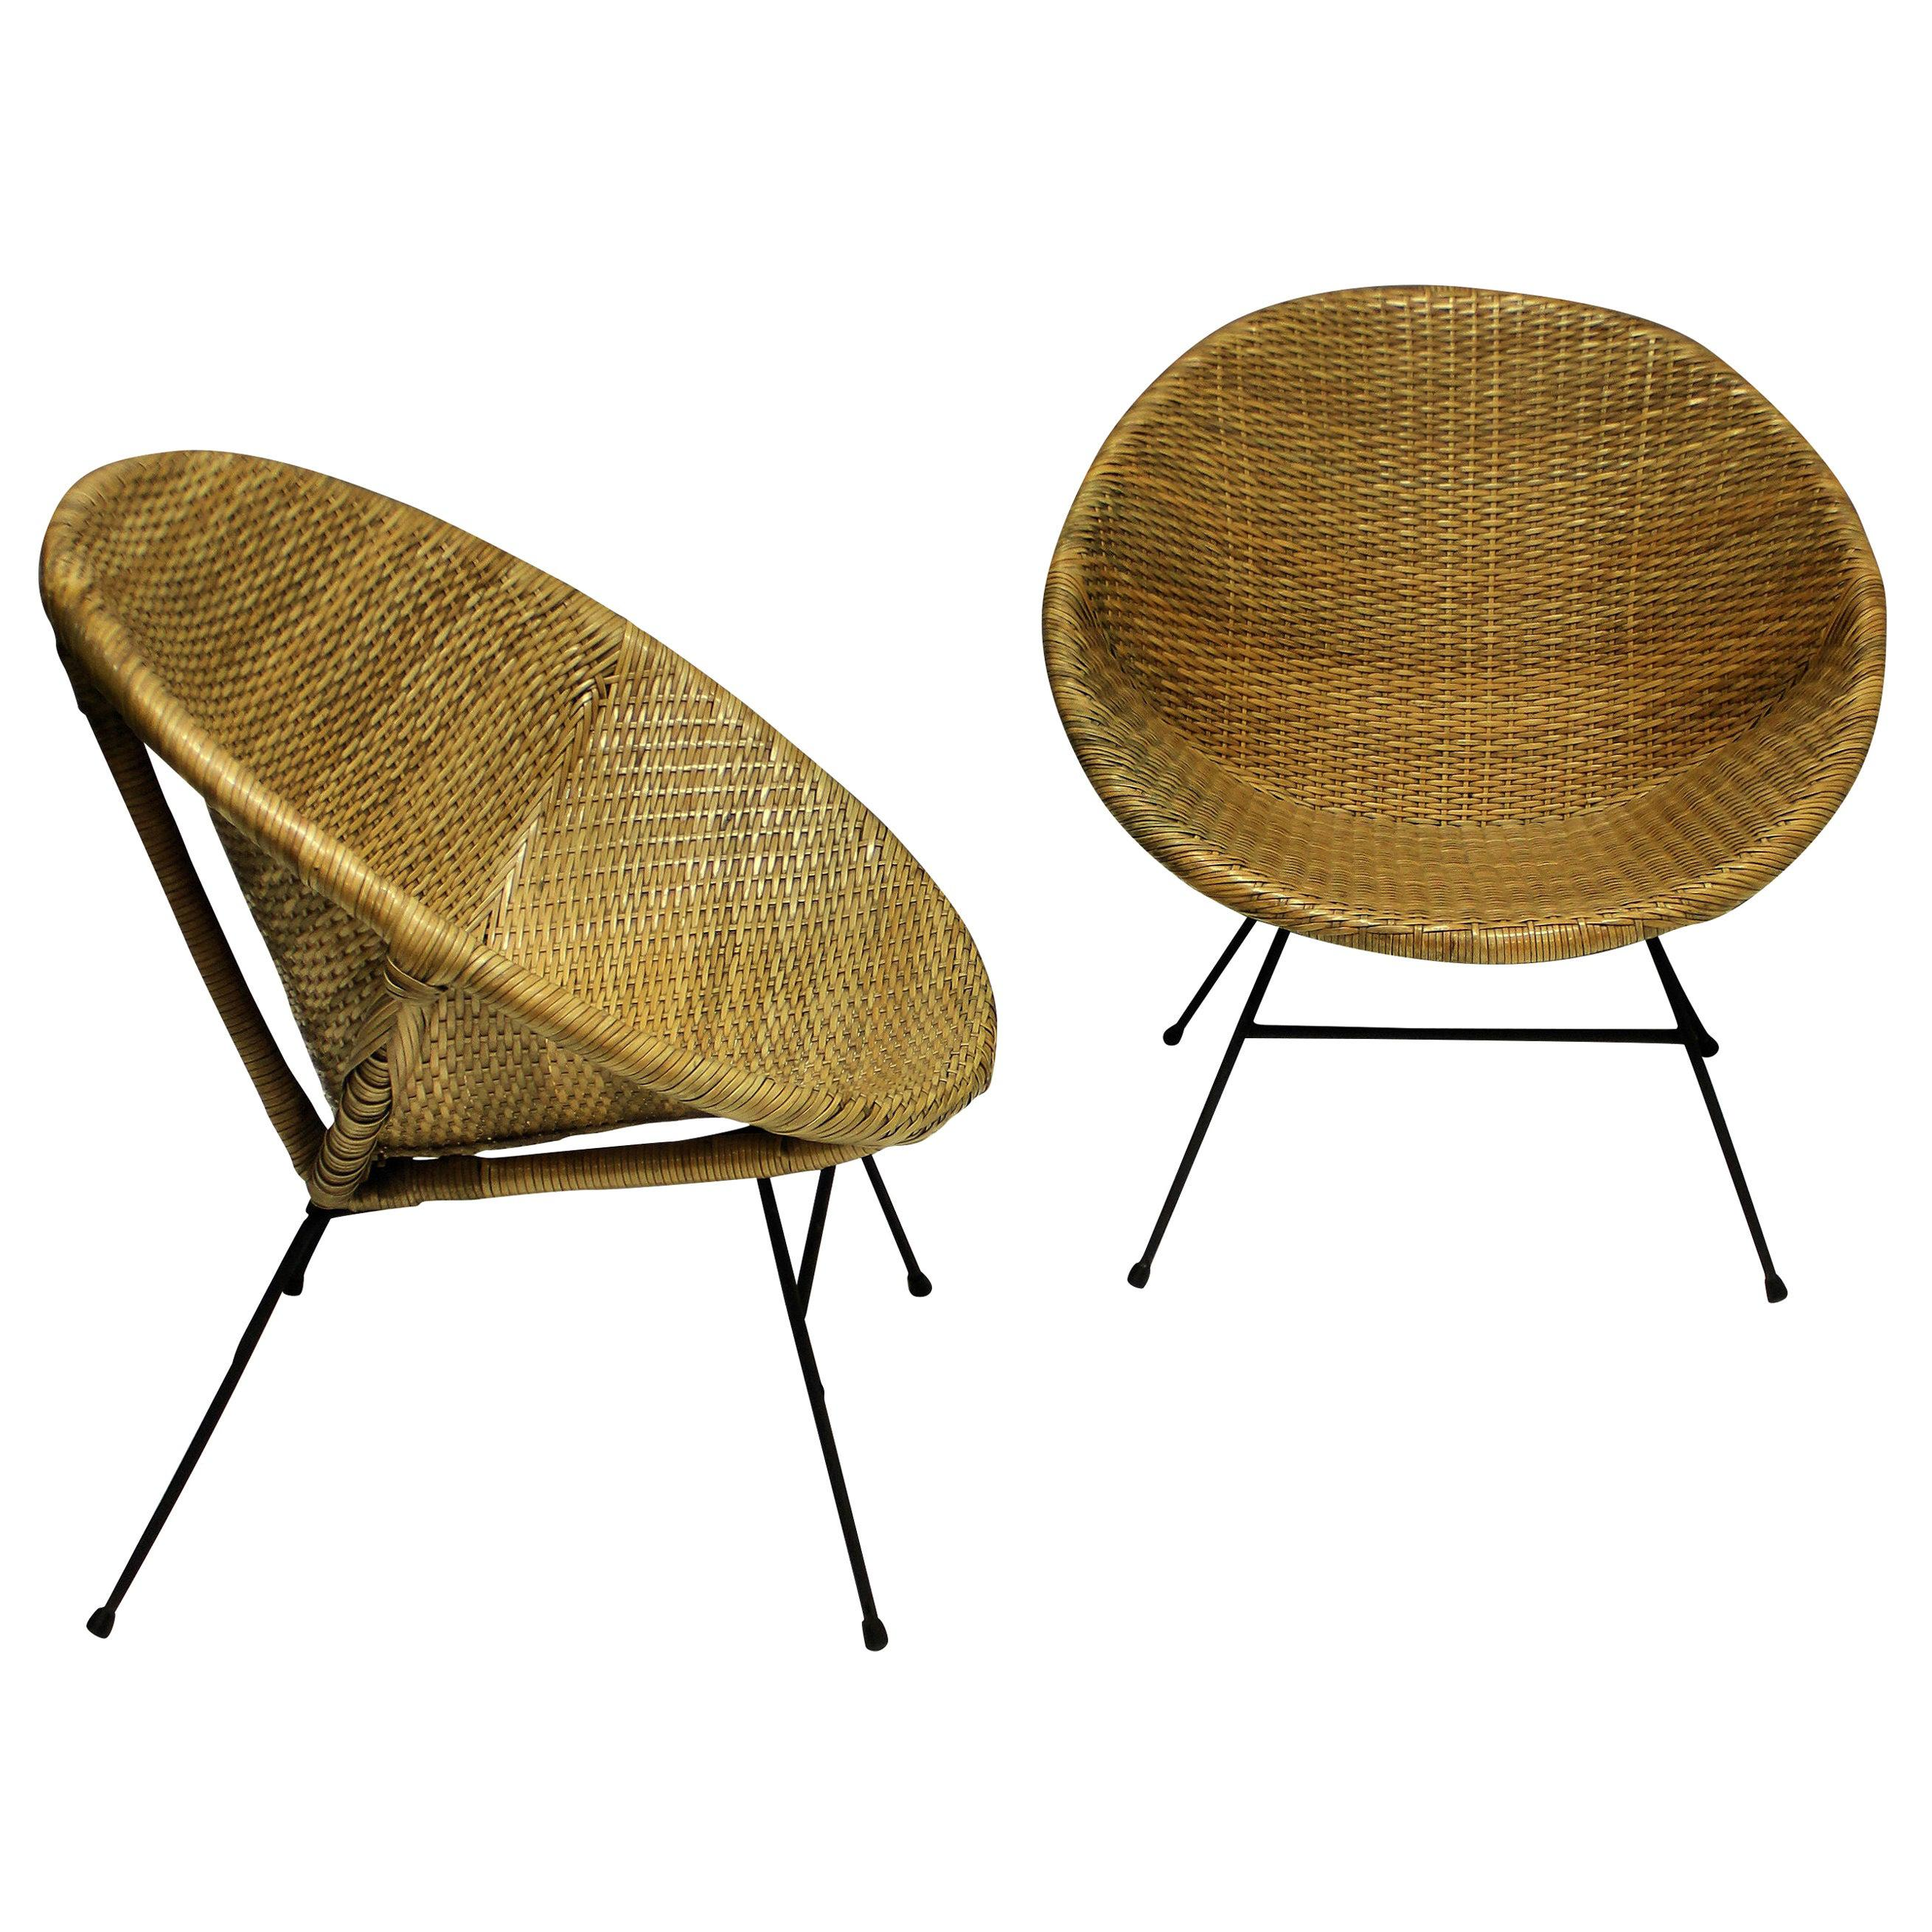 Pair of Unusual French Midcentury Rattan Chairs